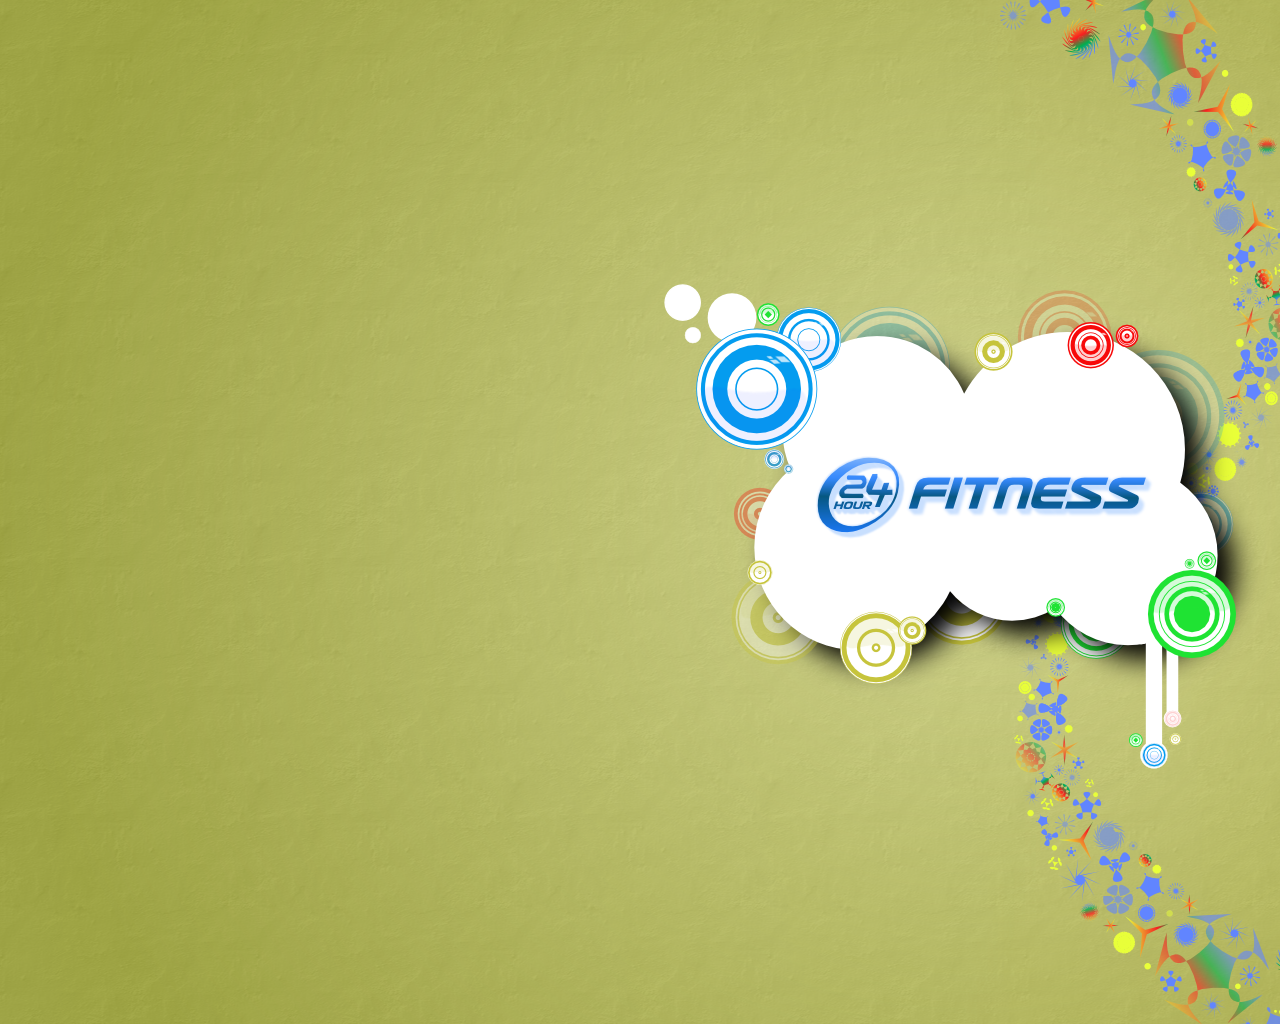 Fitness Desktop Wallpaper 2 Background Wallpaper Wallpaper 1280x1024